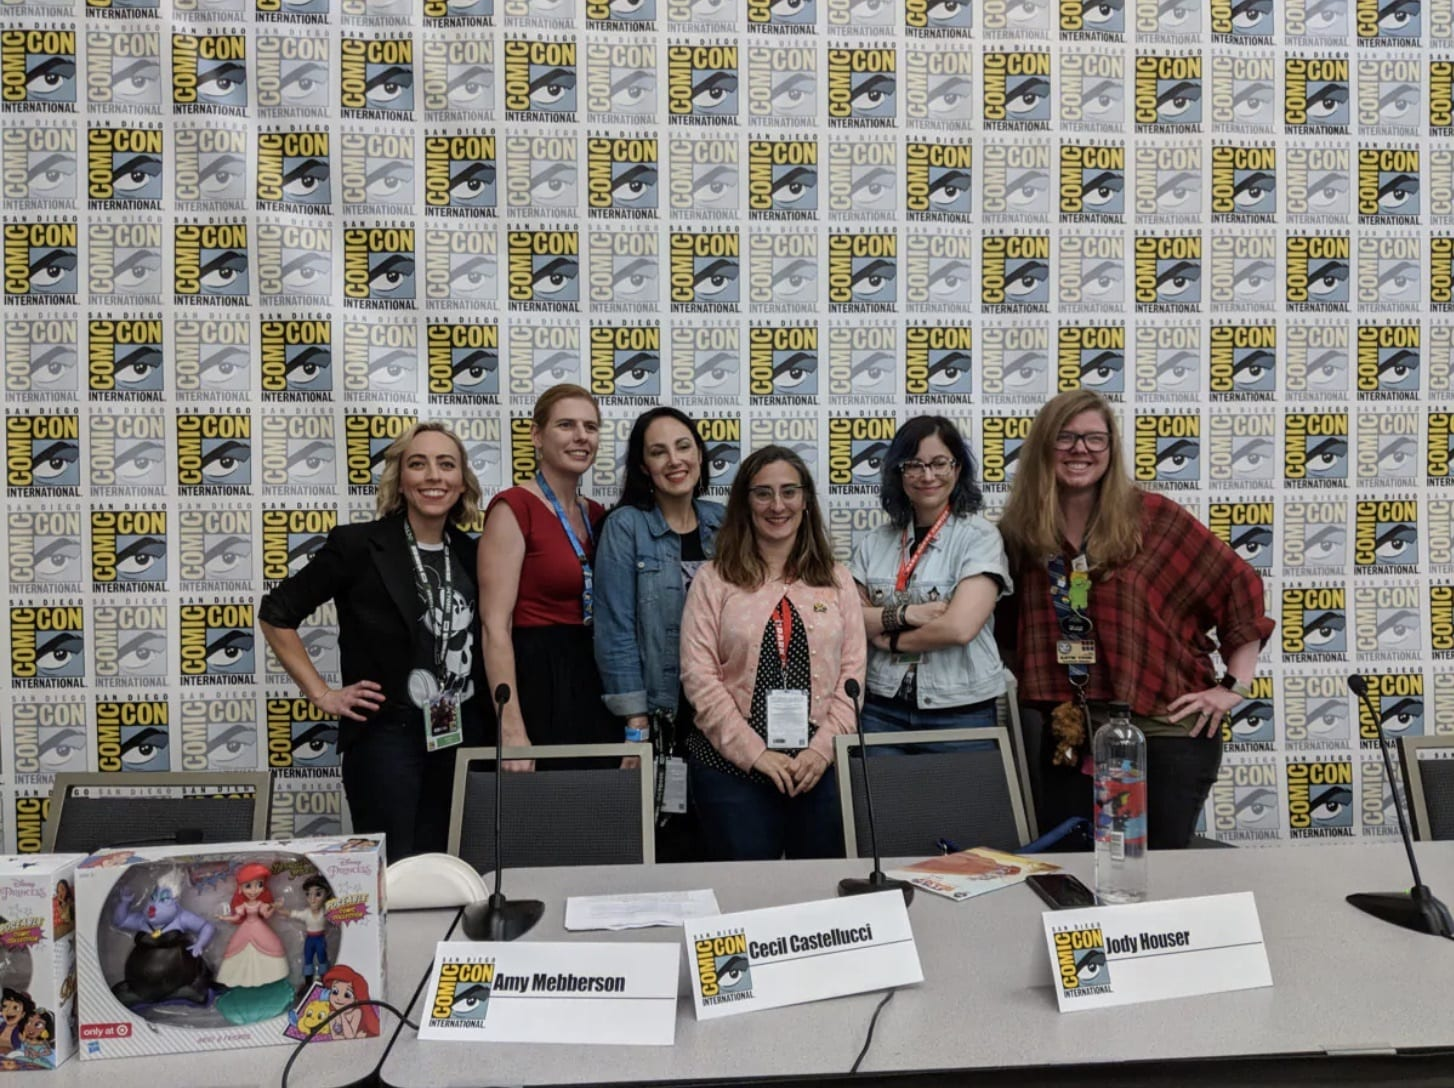 Palenists and Host at the Powerful Young Women Disney Comics Panel at San Diego Comic-Con